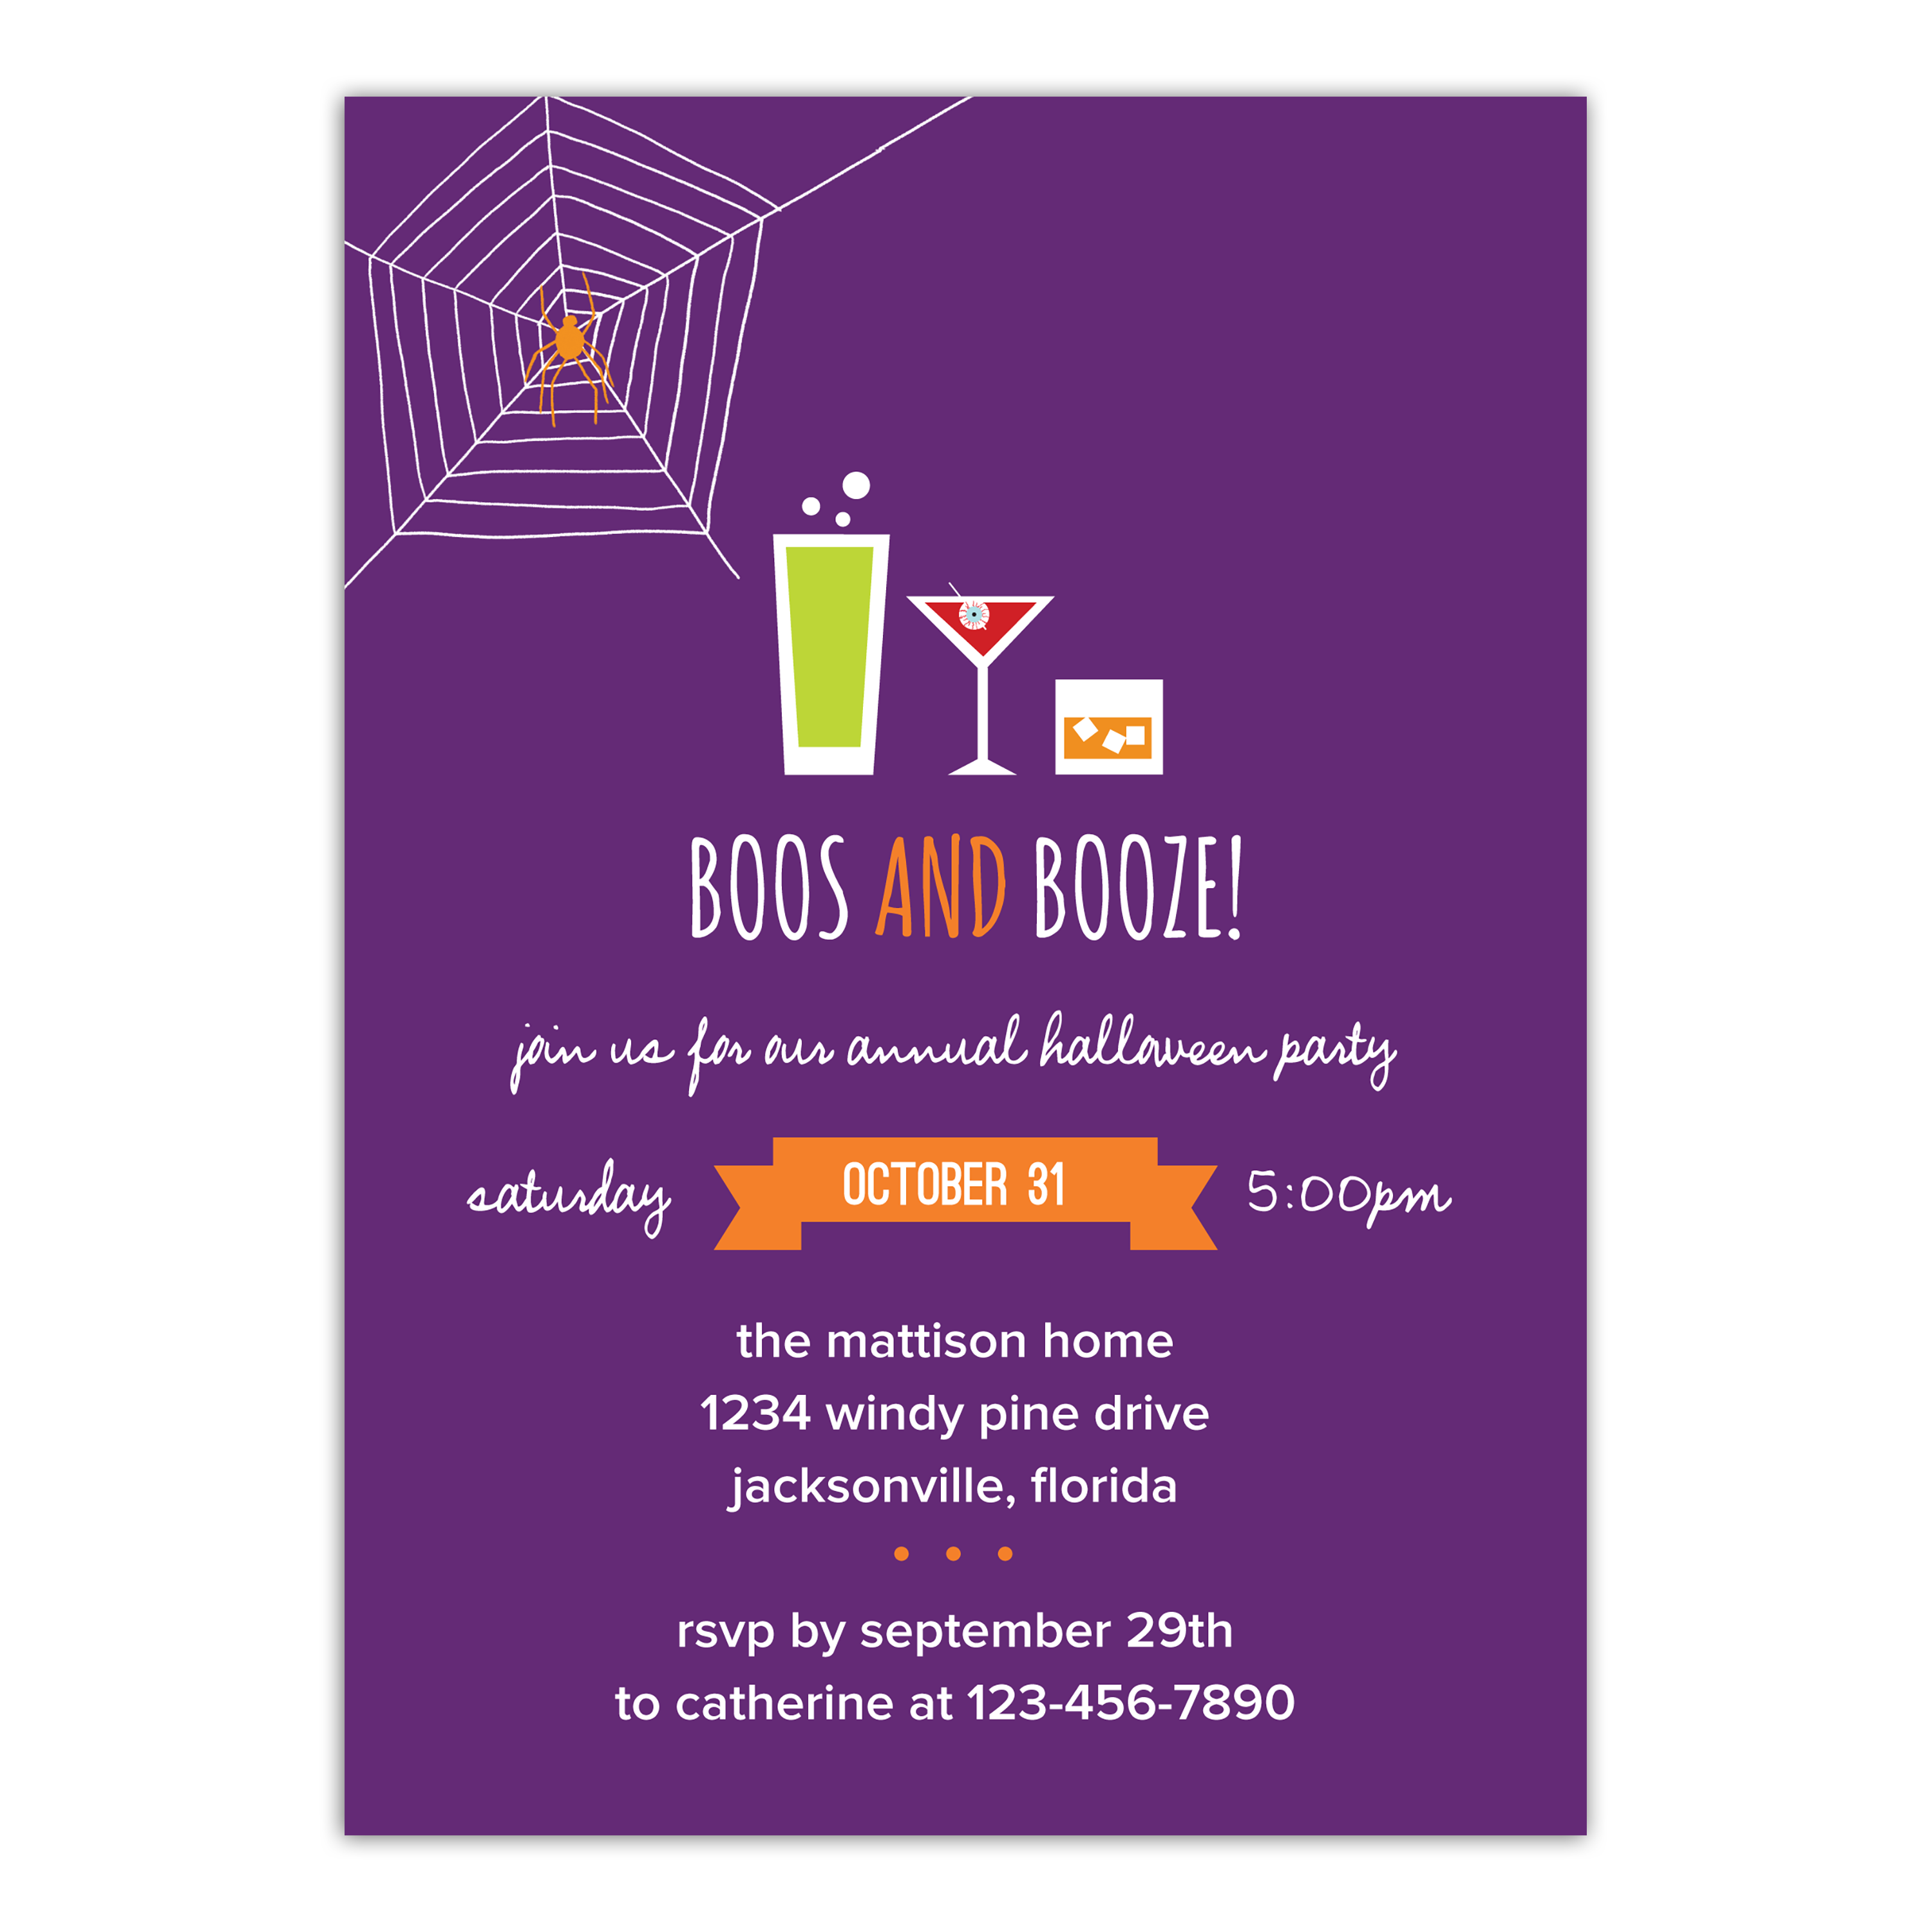 Personalized Halloween Invitation - Boos and Booze - 5 x 7 Flat